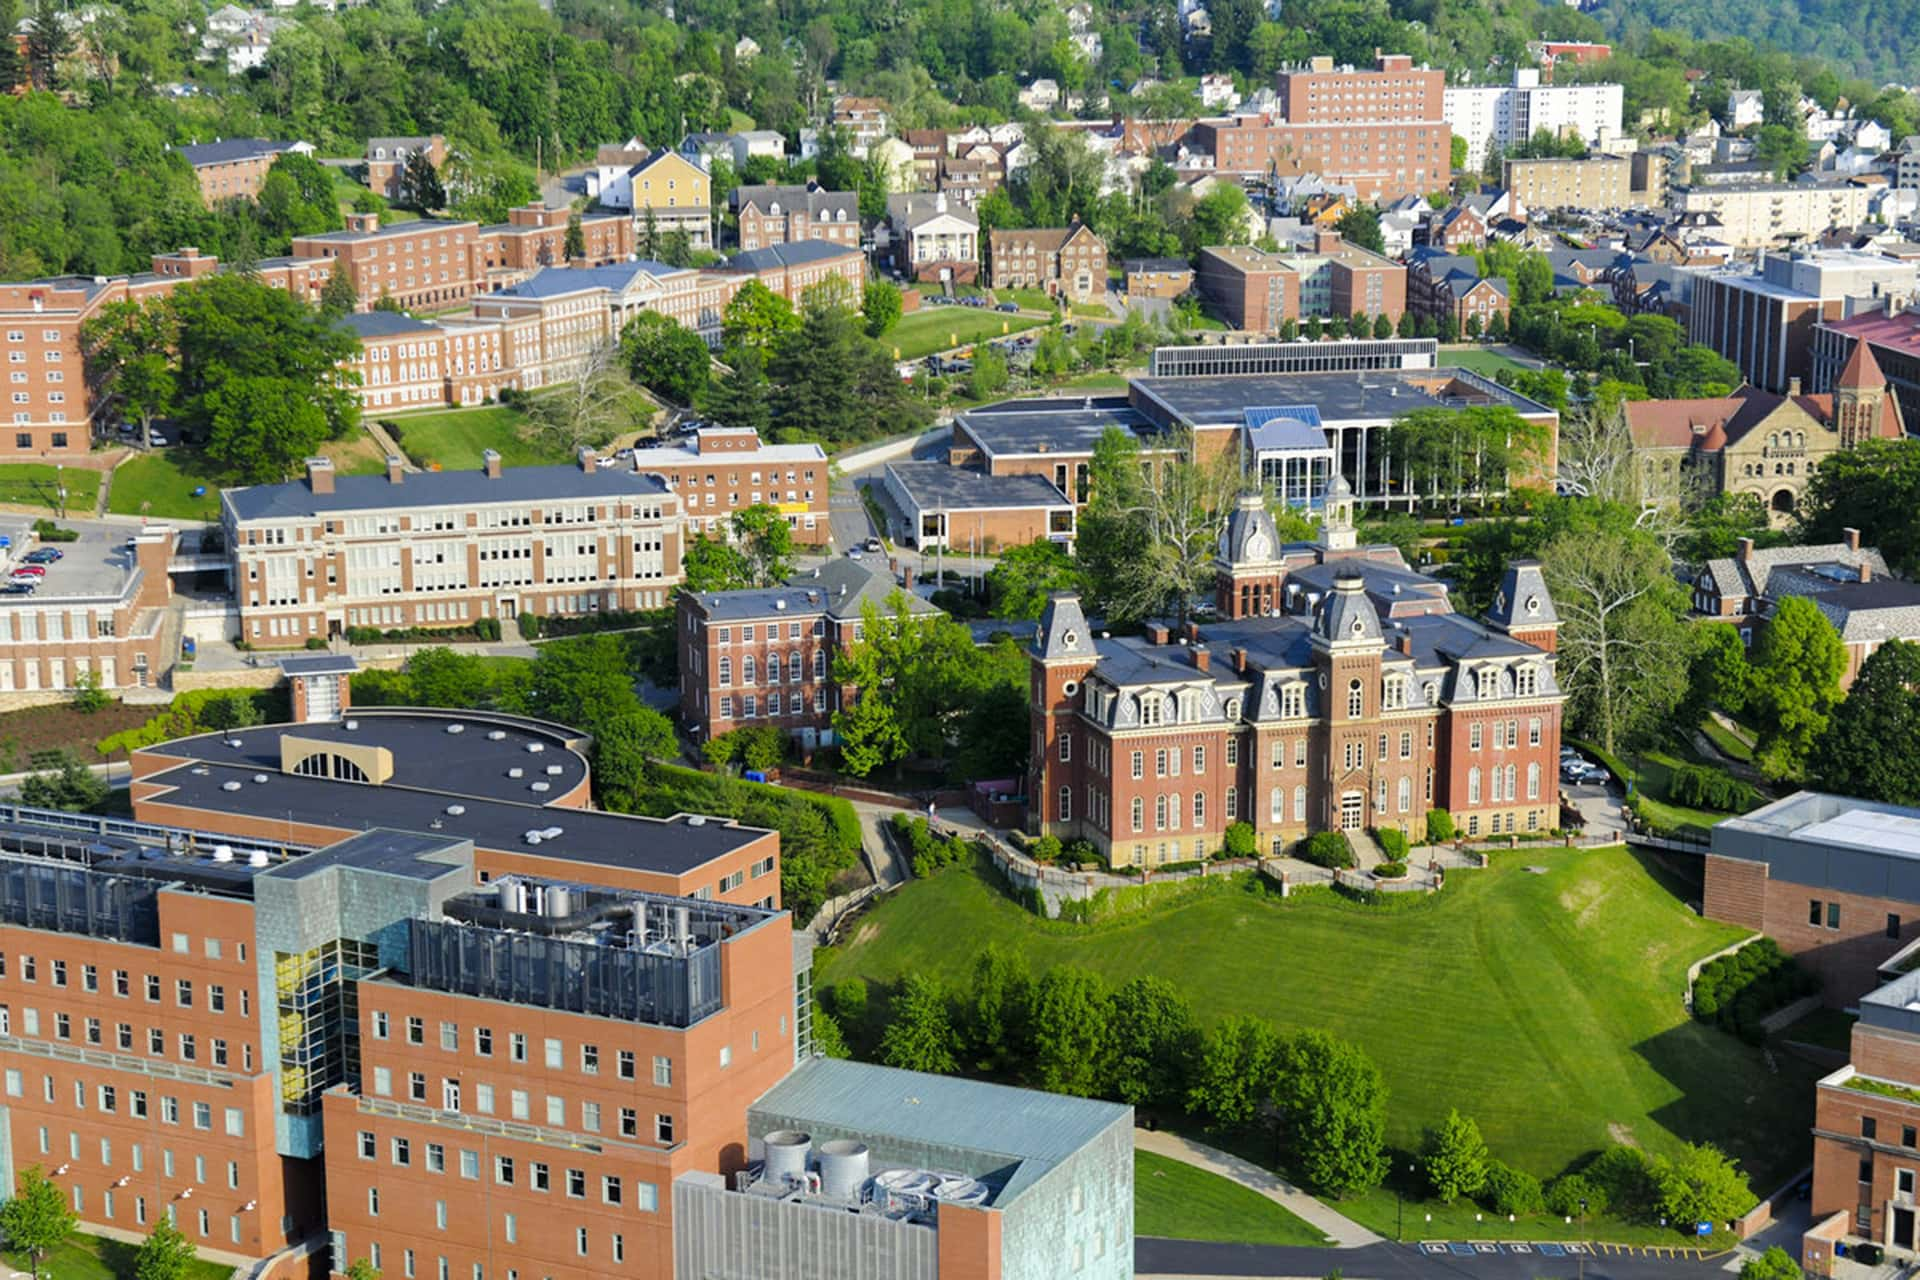 WVU Board of Governors welcomes Harris and Riggs, hears update on COVID-19 response